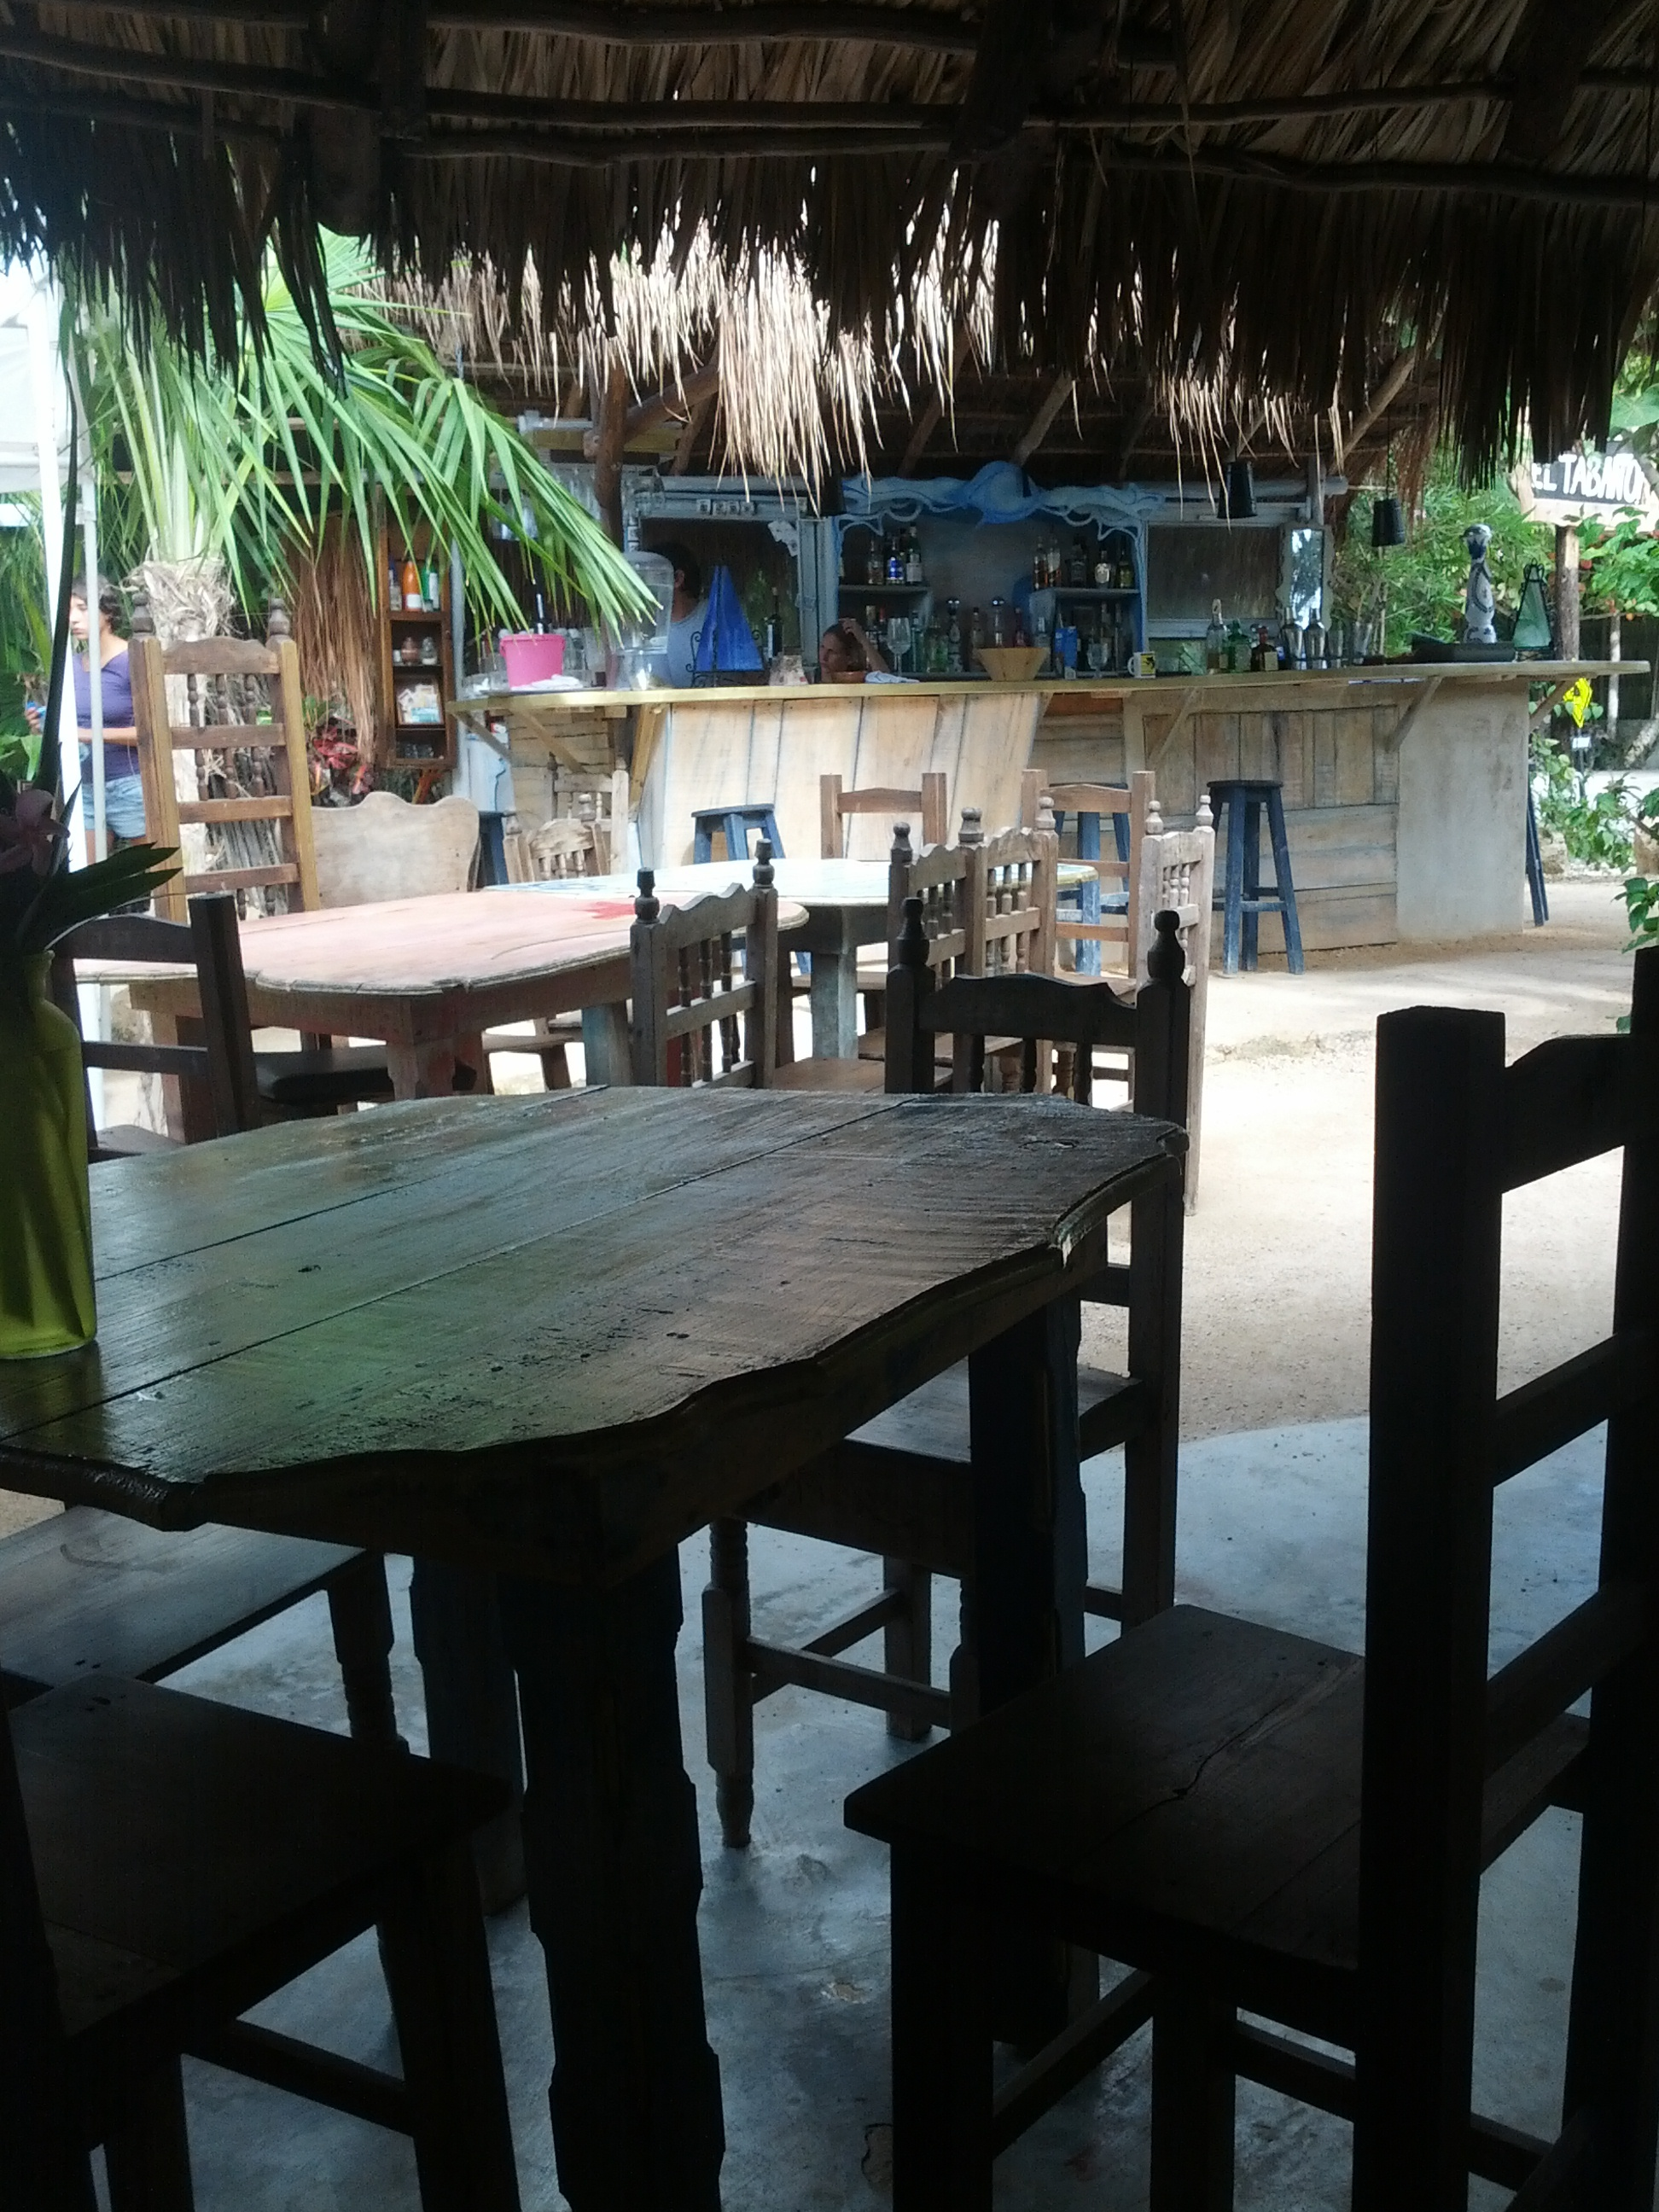 Laid back El Tábano restaurante at the Tulum beach strip